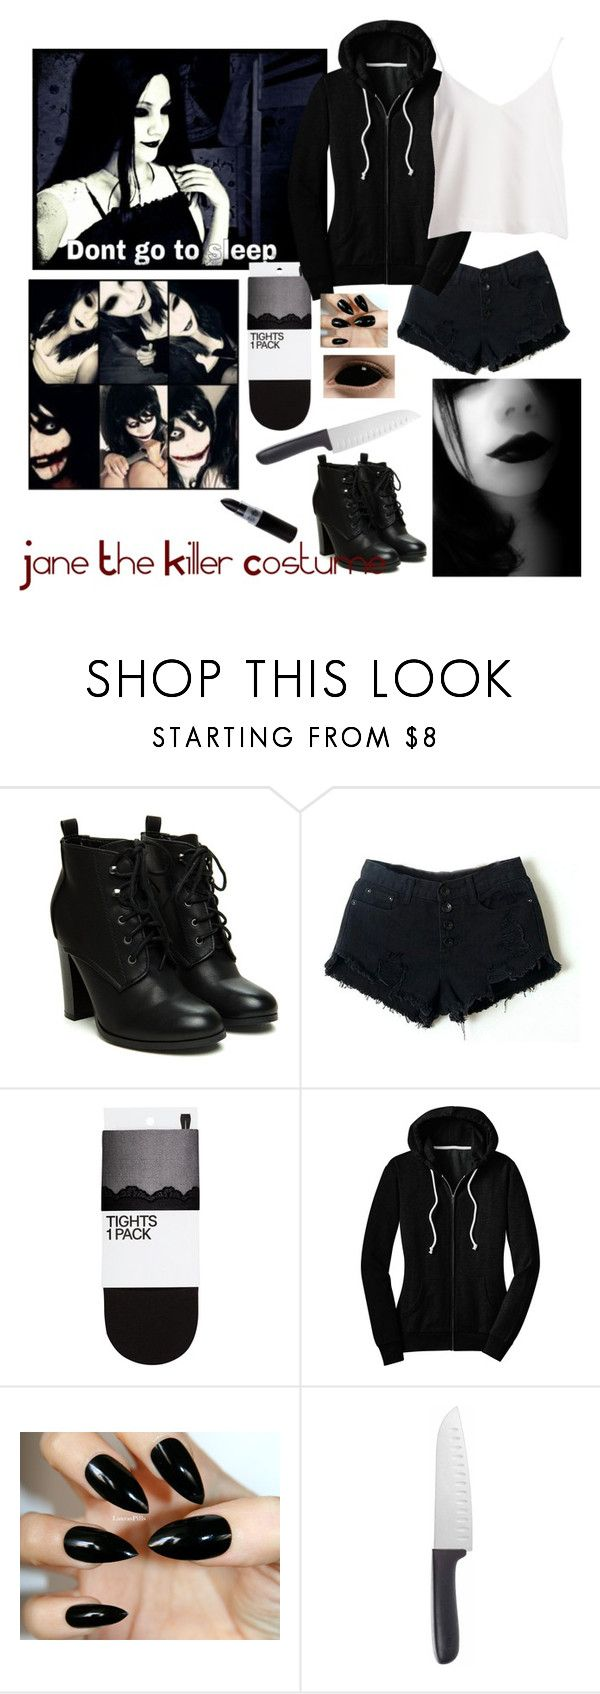 """Jane The Killer Costume"" by phychopaintlover ❤ liked on Polyvore featuring Retrò, H&M and OXO"